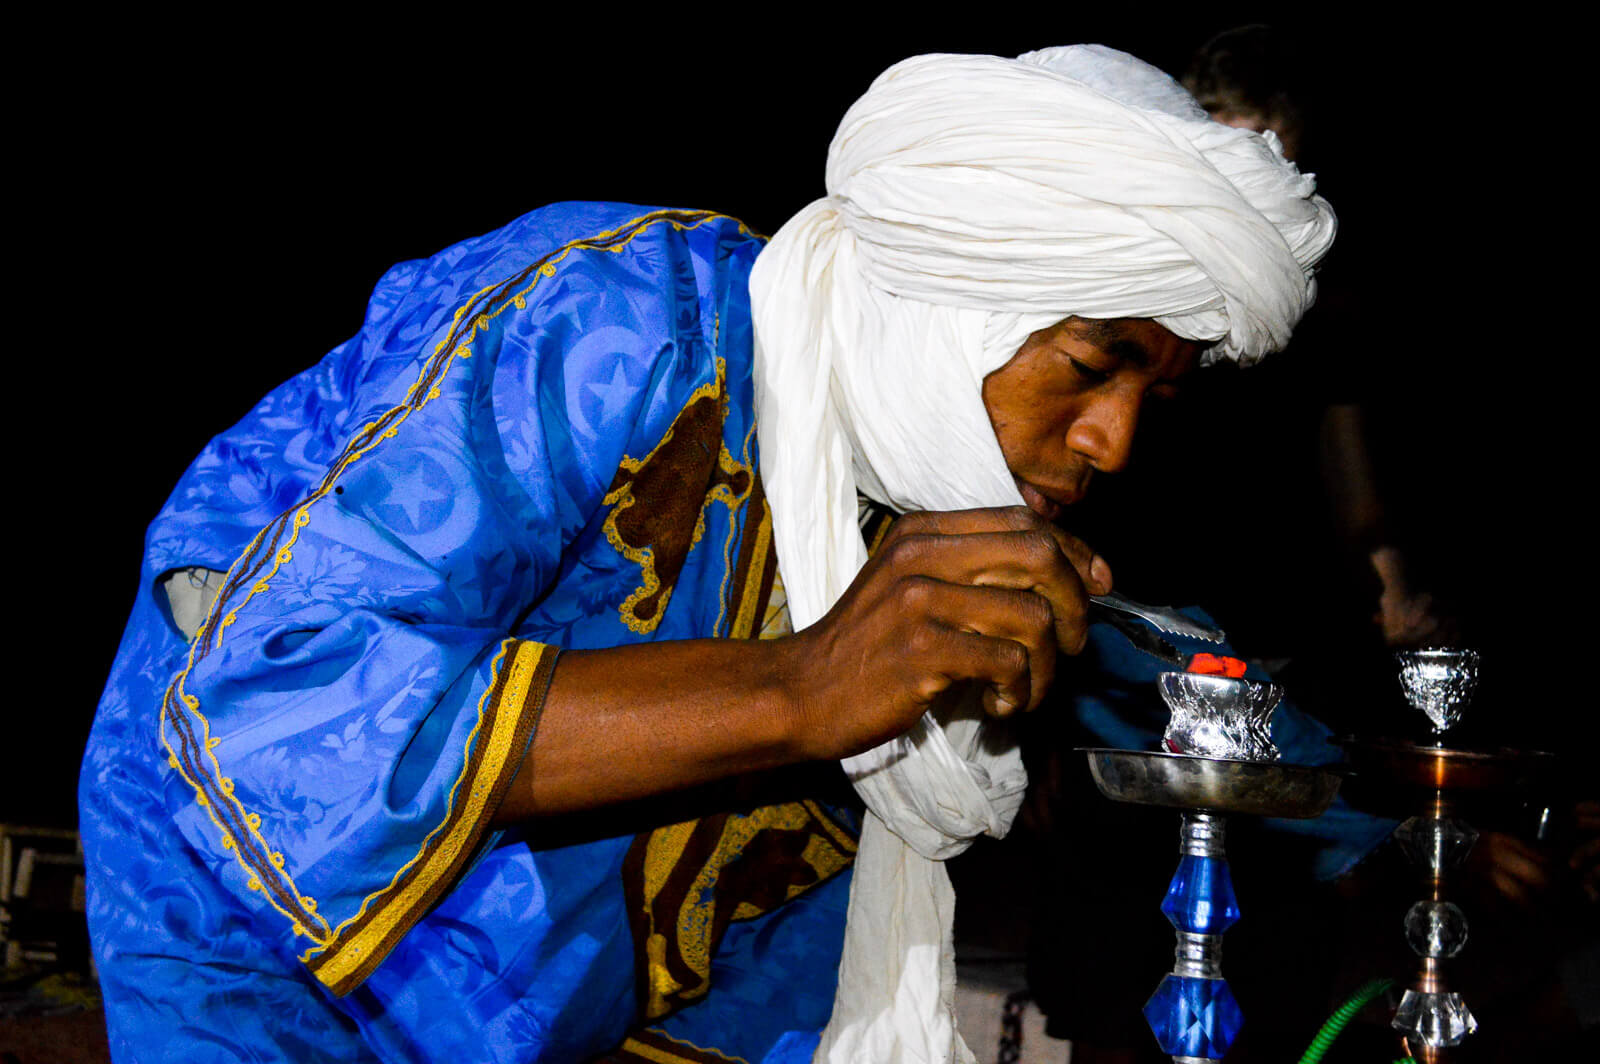 Bedouin diner and dance show